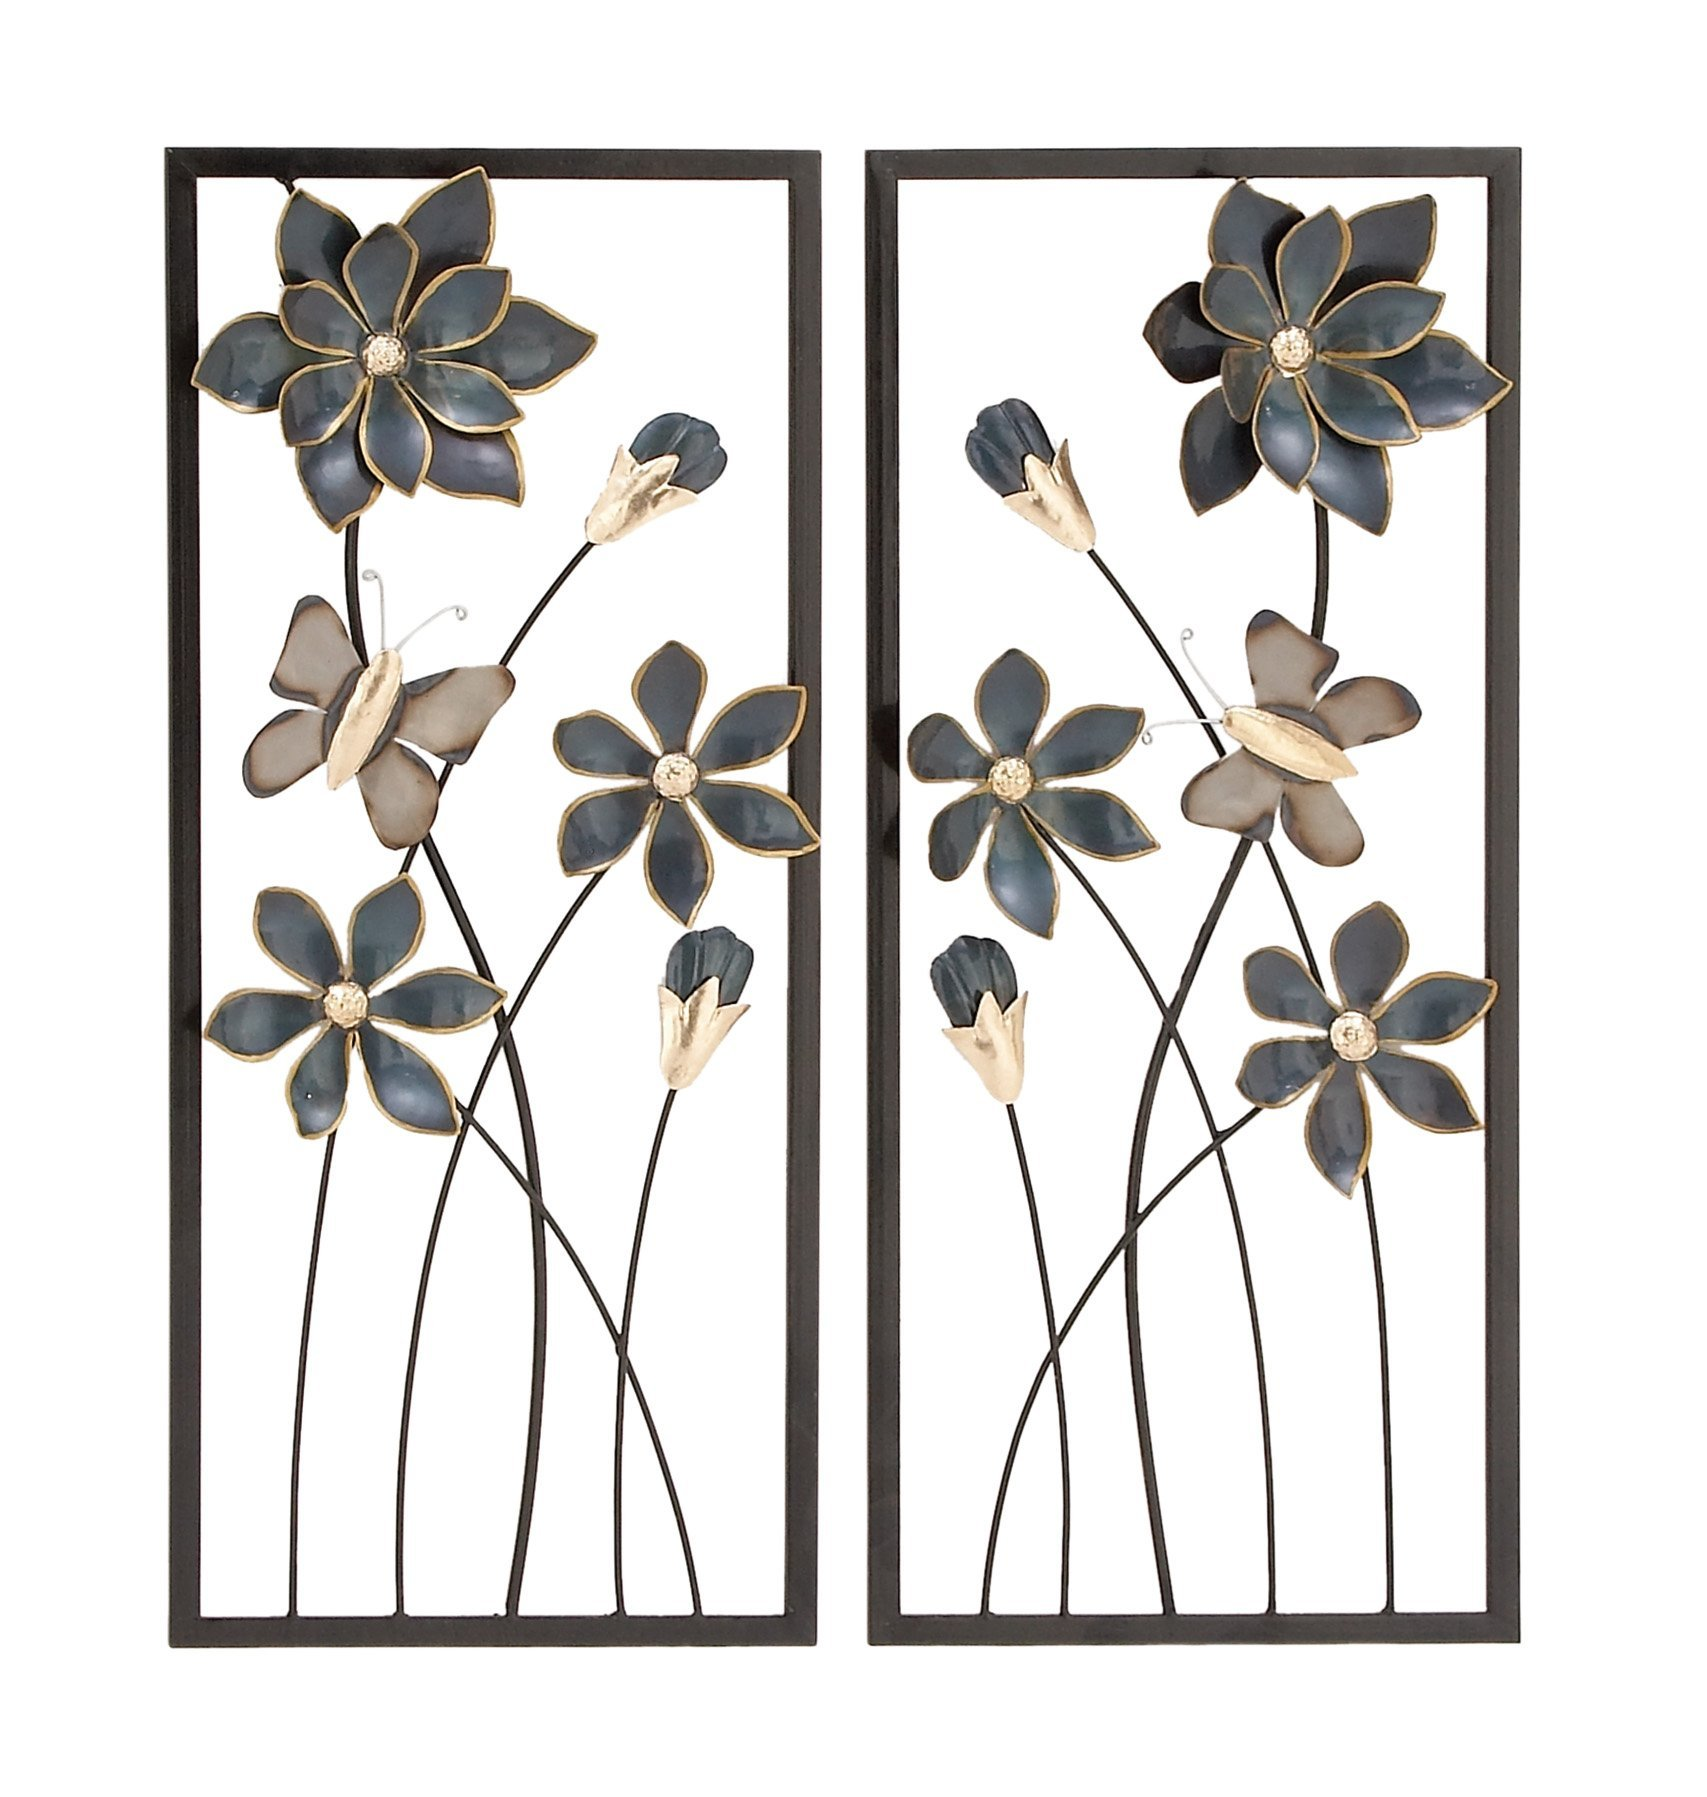 Deco 79 53361 Metal Wall Decor (Set of 2), 12'' x 28'', Blue/Silver/Gold/Black